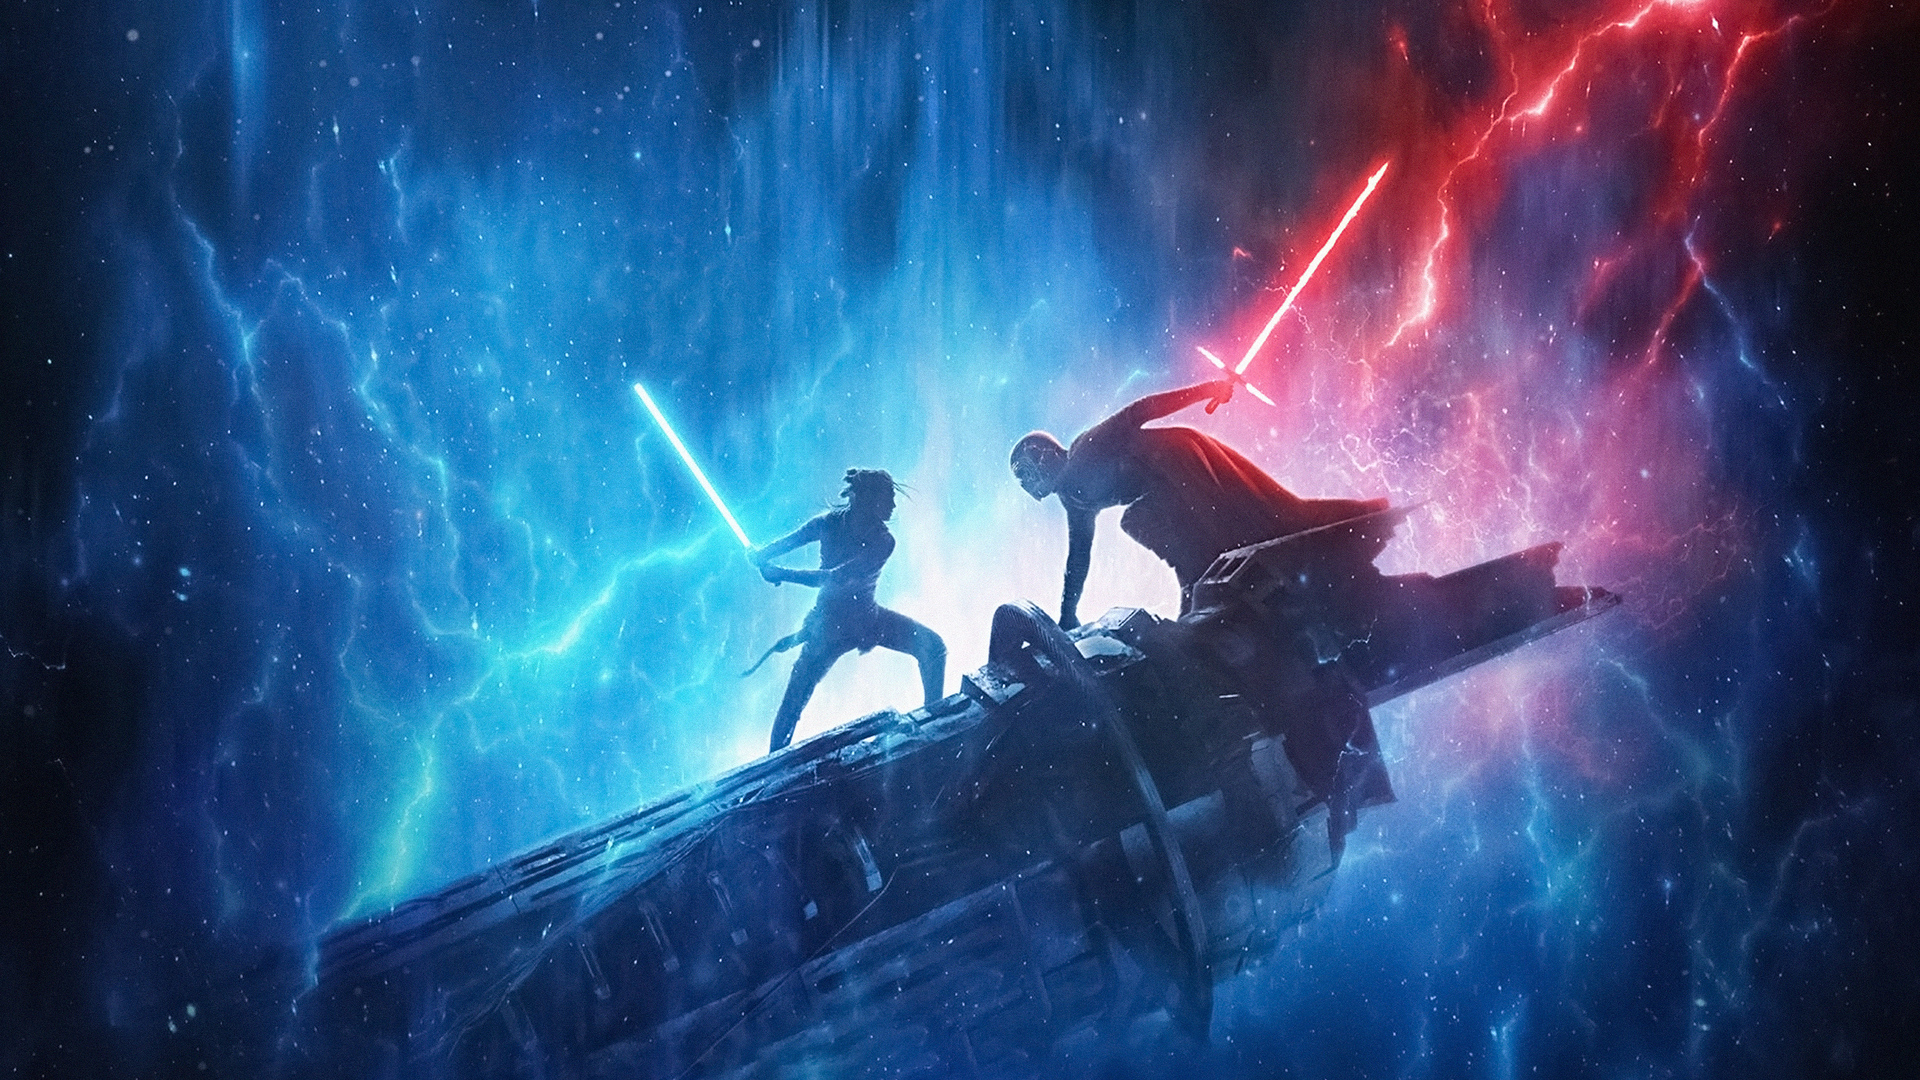 1920x1080 Star Wars The Rise Of Skywalker 2019 4k Laptop